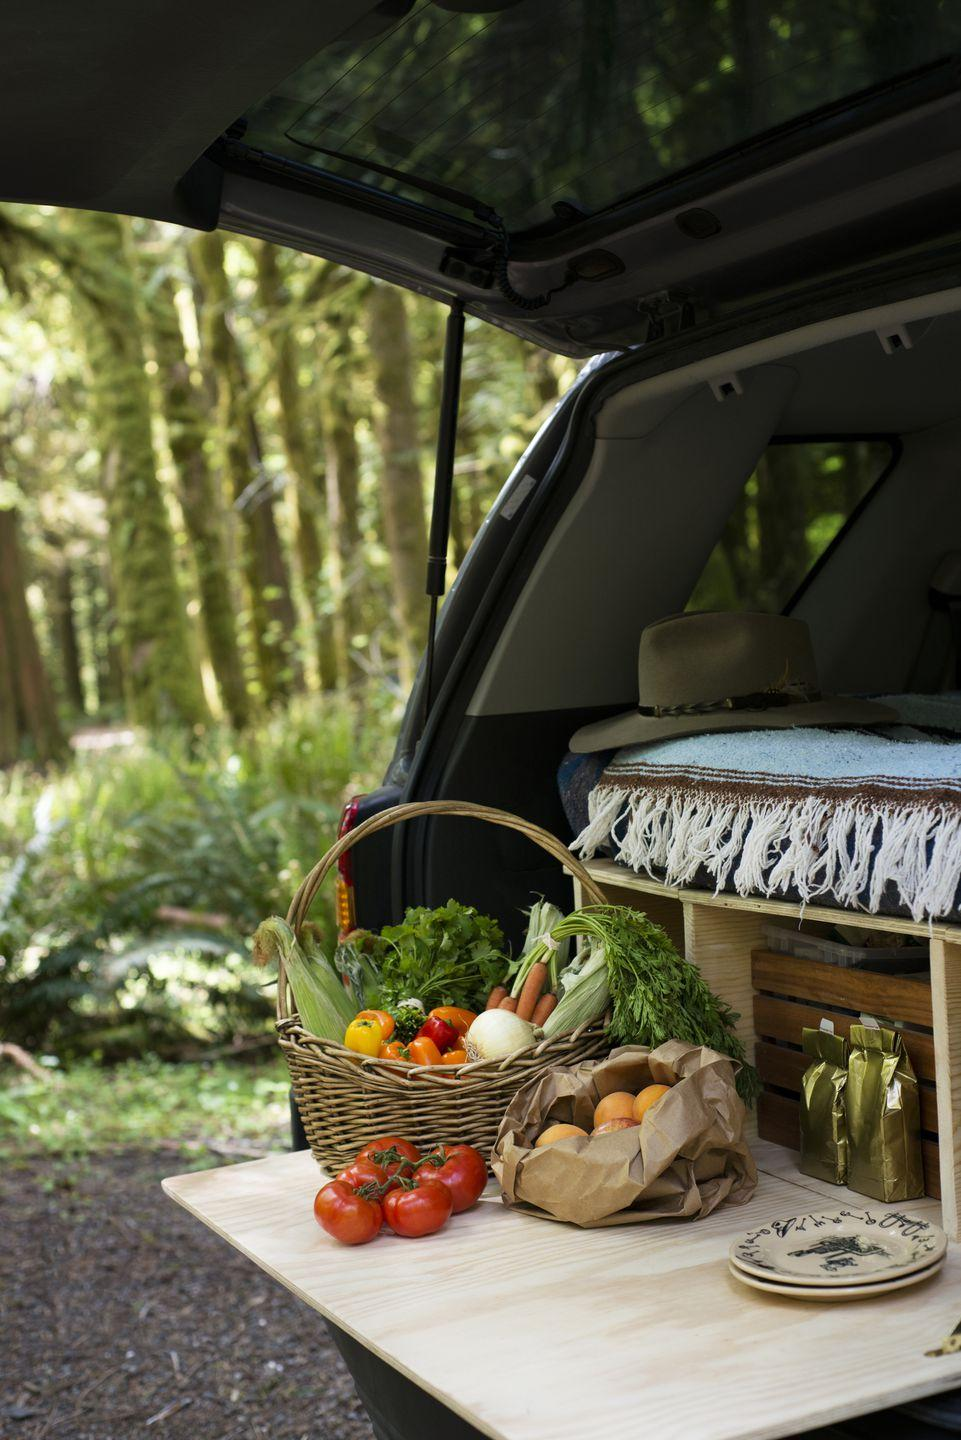 <p>Eating on the go doesn't necessarily have to equate to fast food from the car and/or rest stops. Make the most of your car-to-table dining experience by elongating your trunk with a slab of wood (which you can store beneath your luggage and supplies), then tuck into some fresh produce. You can even DIY an enclosed wood storage unit to fit the width of your trunk, then convert the lid into a sturdy table. </p>